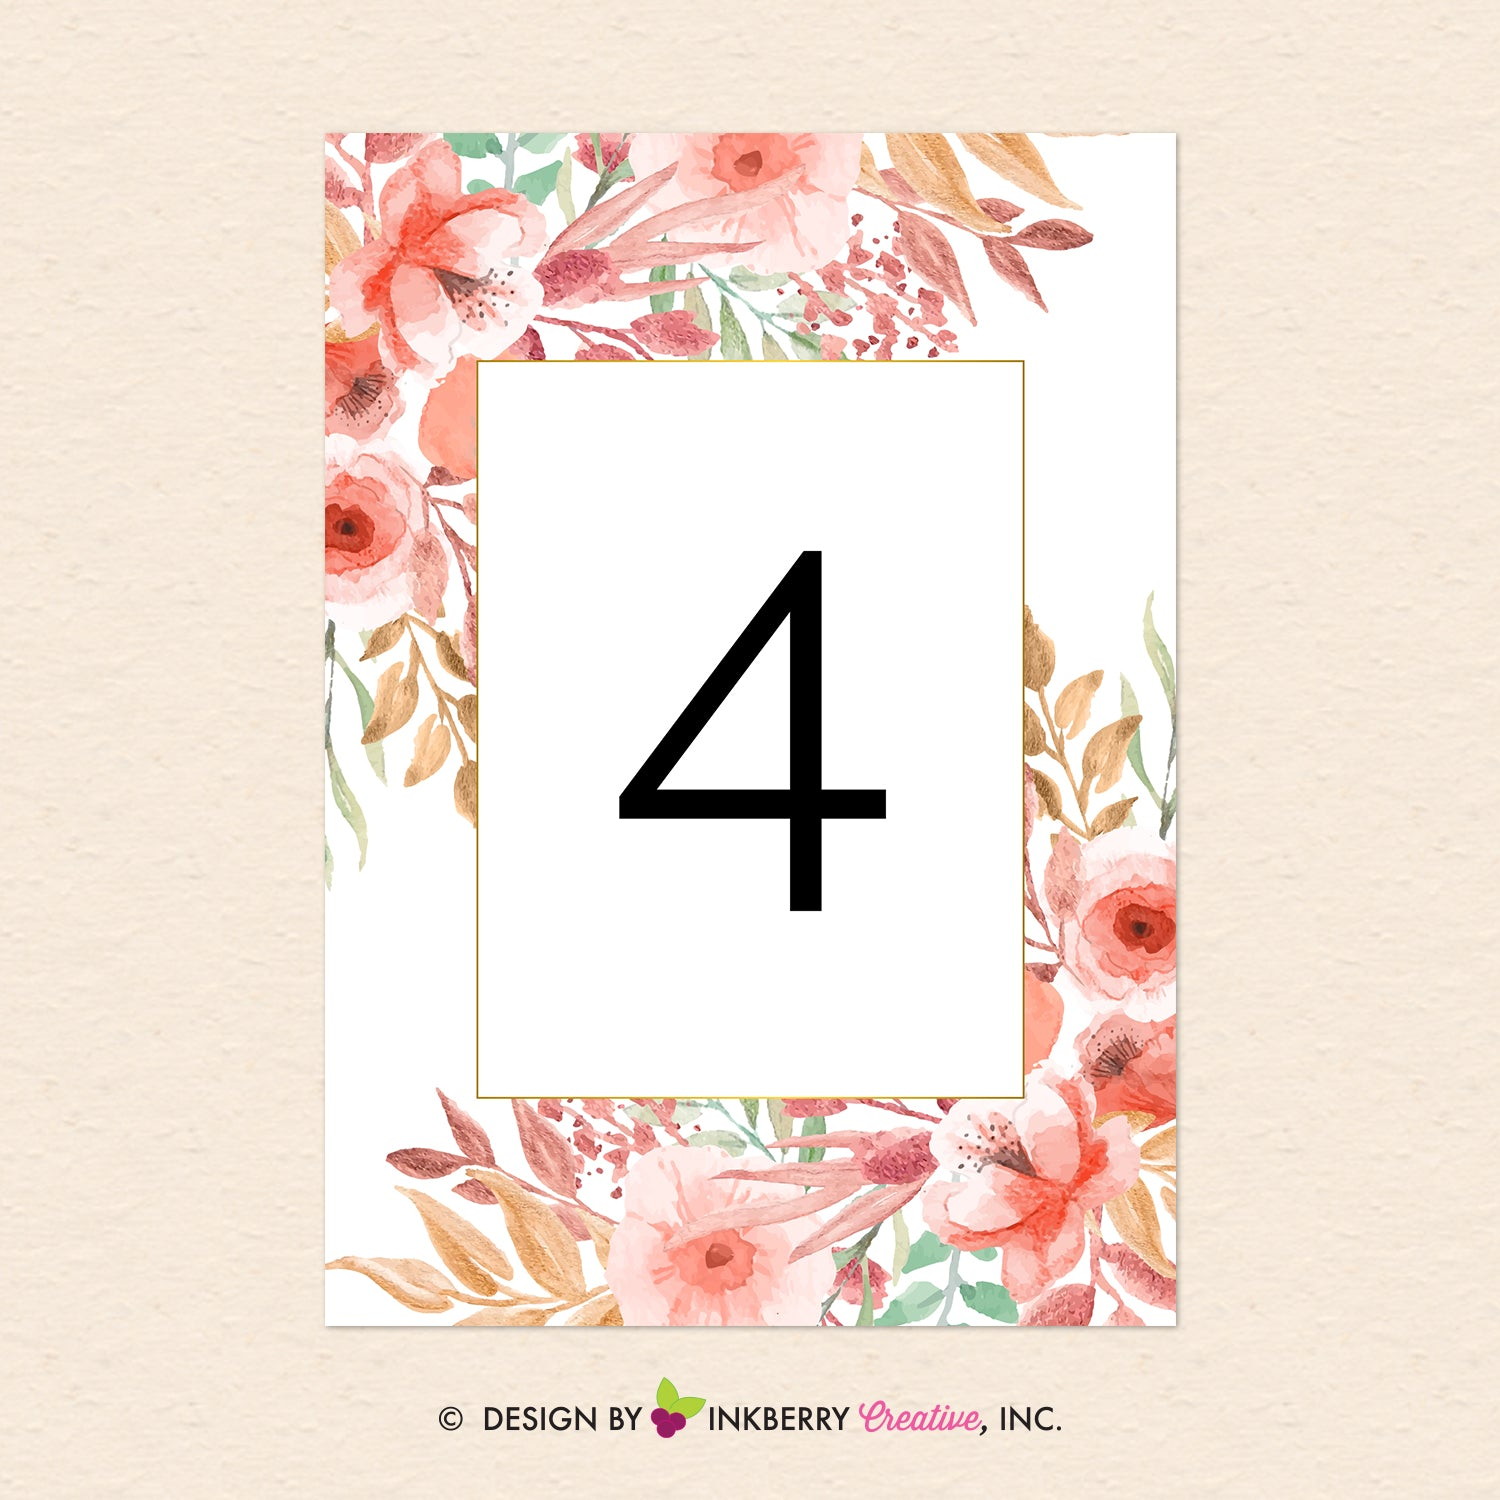 photo regarding Printable Wedding Table Numbers titled Eye-catching Blooms - Watercolor Painted Floral Printable Marriage ceremony Desk Quantity Playing cards - Instantaneous Obtain, Editable PDF - Edit with Adobe Reader